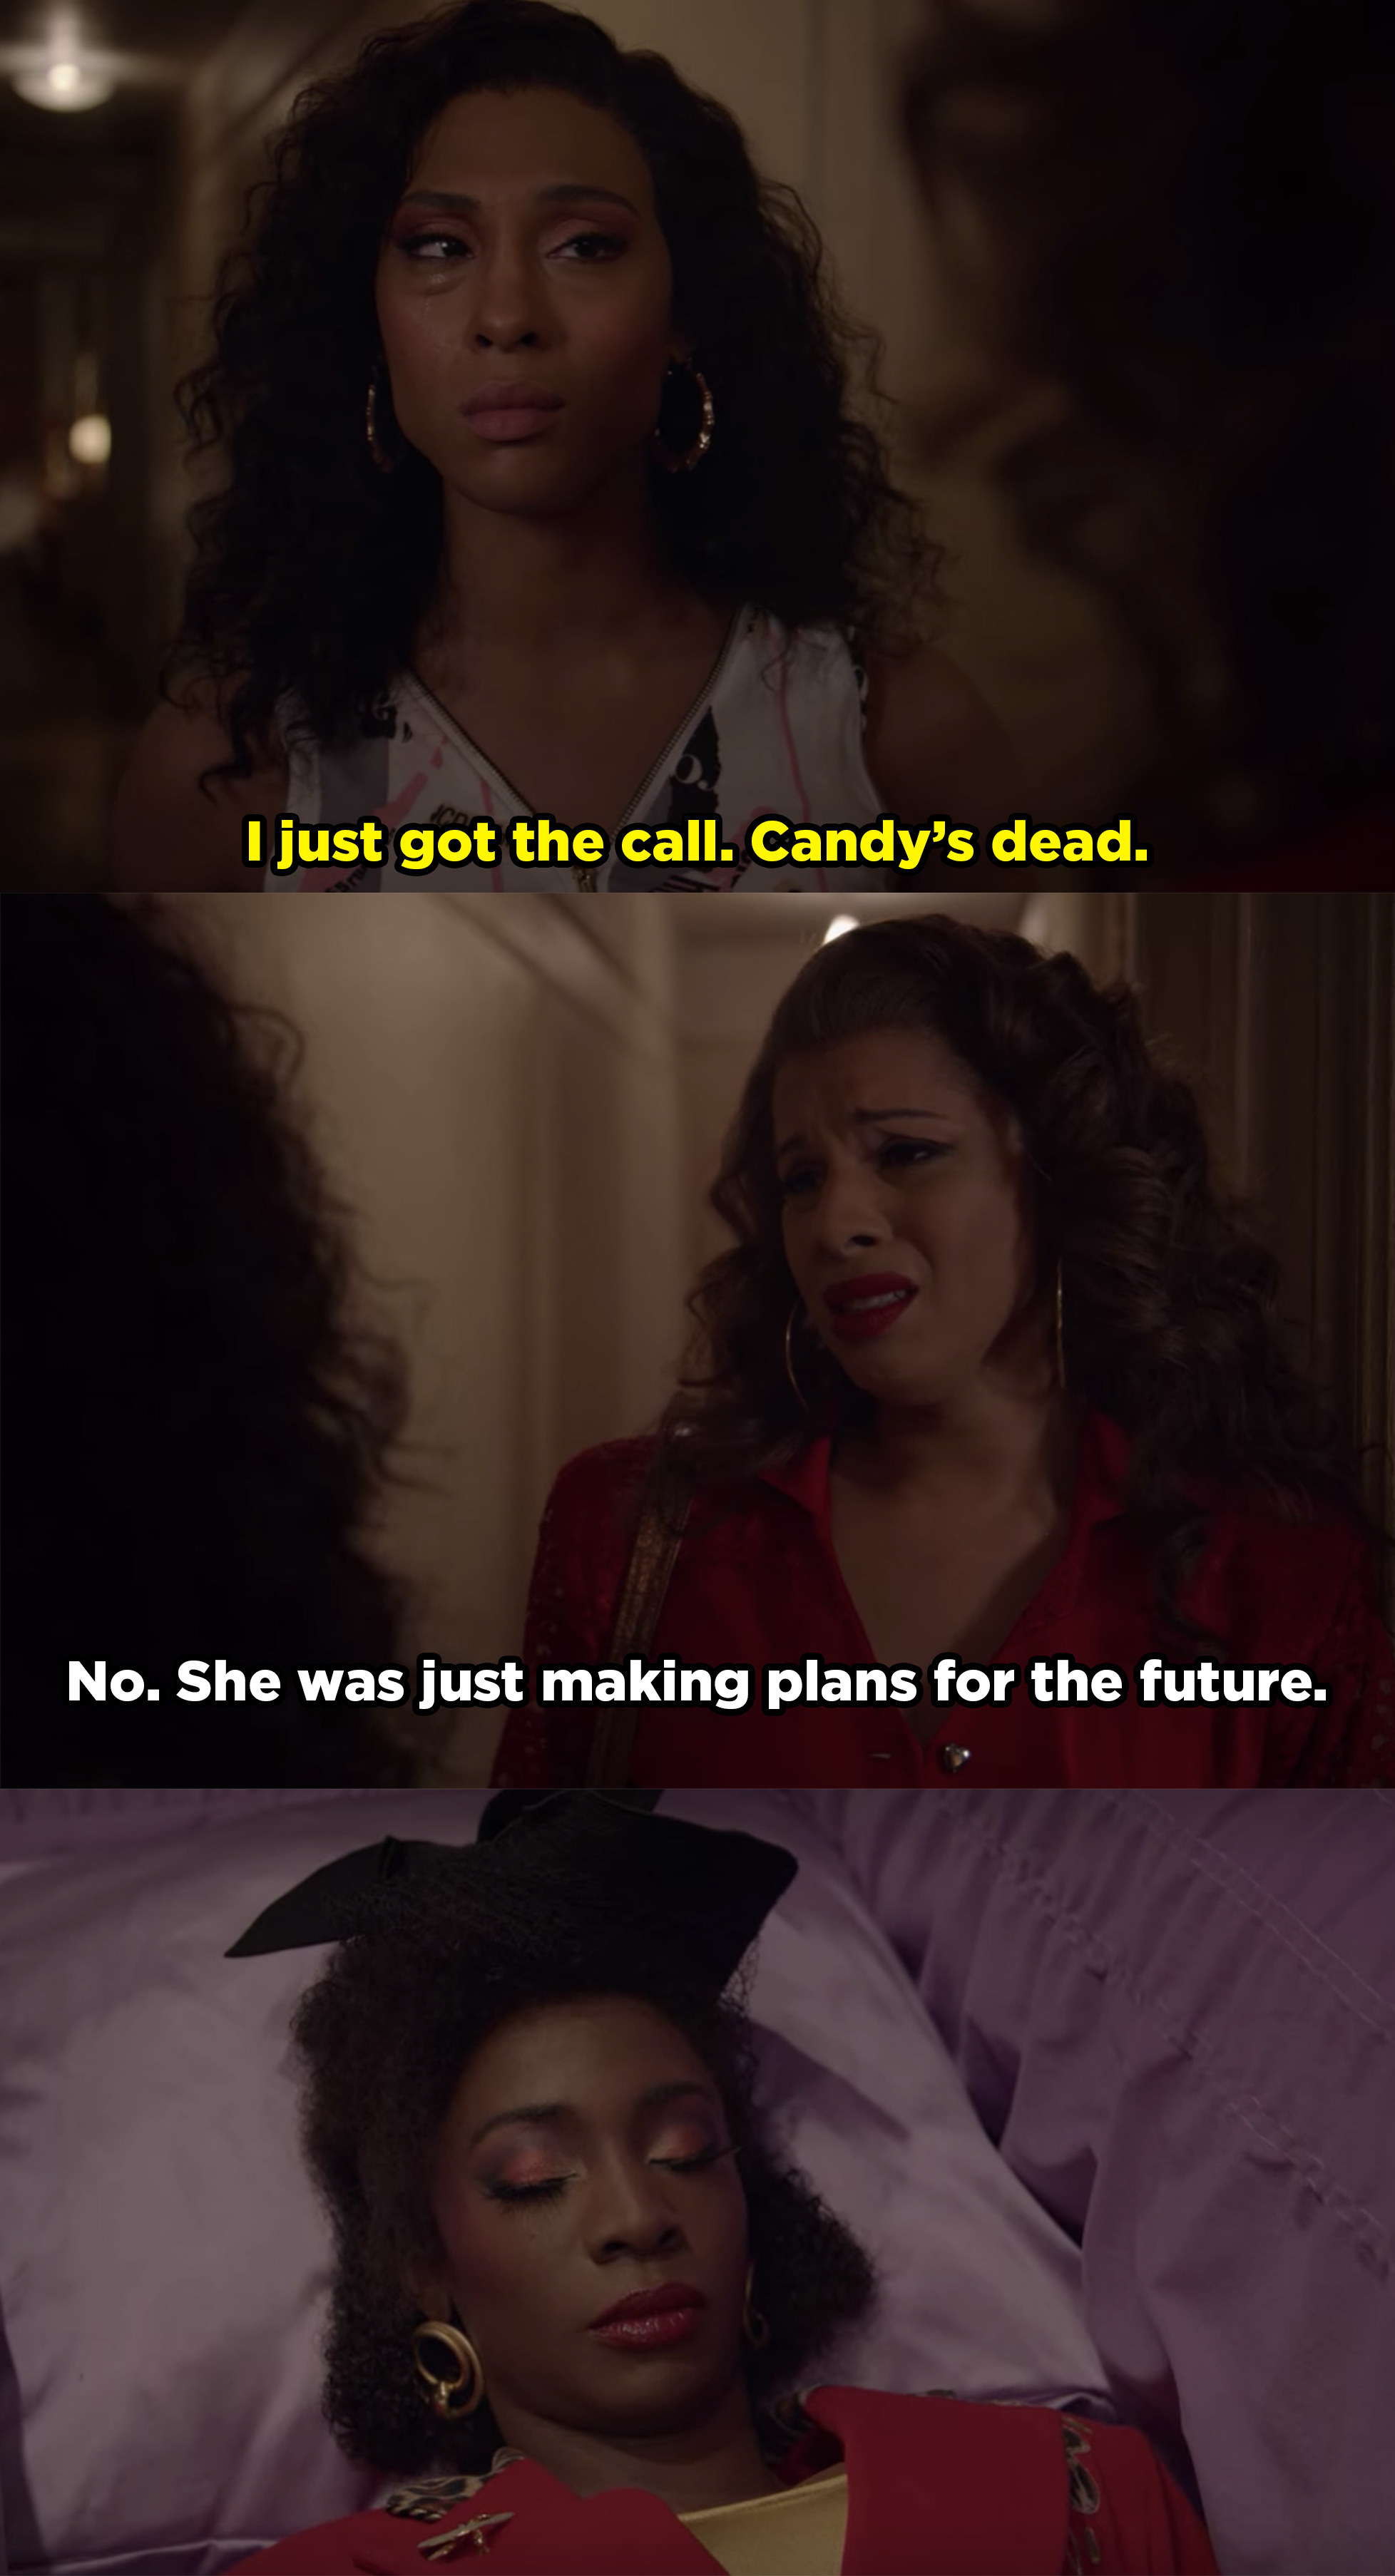 Blanca gets the call that Candy died, right as she was planning for the future, and the girls attend her funeral.